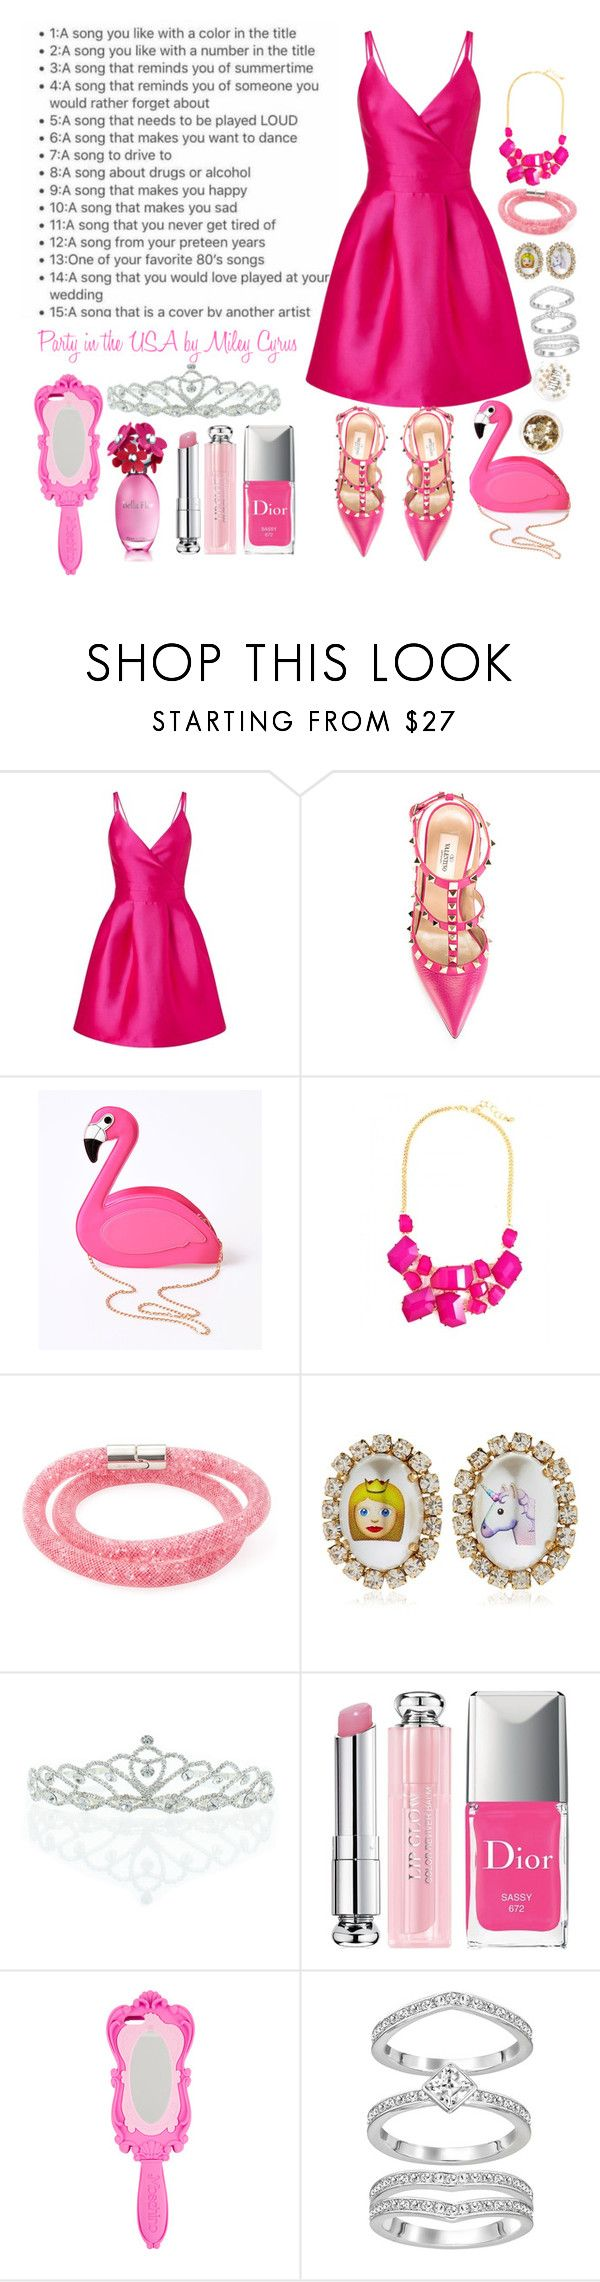 """""""Day 5 Party in the USA"""" by grace-buerklin ❤ liked on Polyvore featuring Miss Selfridge, Valentino, Lulu Hun, Swarovski, Bijoux de Famille, Kate Marie, Christian Dior, Moschino and Topshop"""